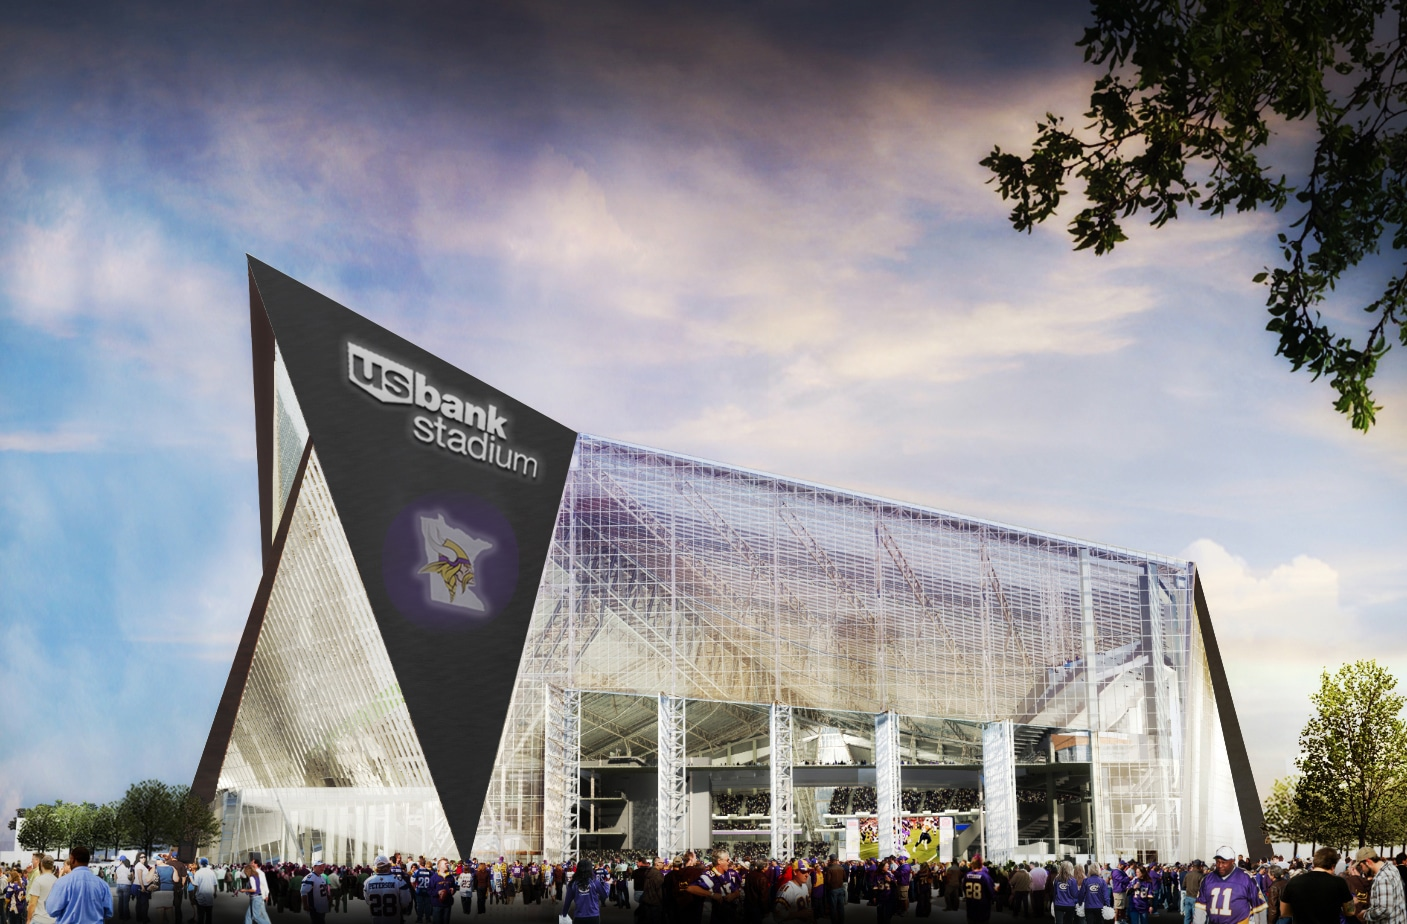 Sustainability Drove Design Behind Us Bank Stadium Green